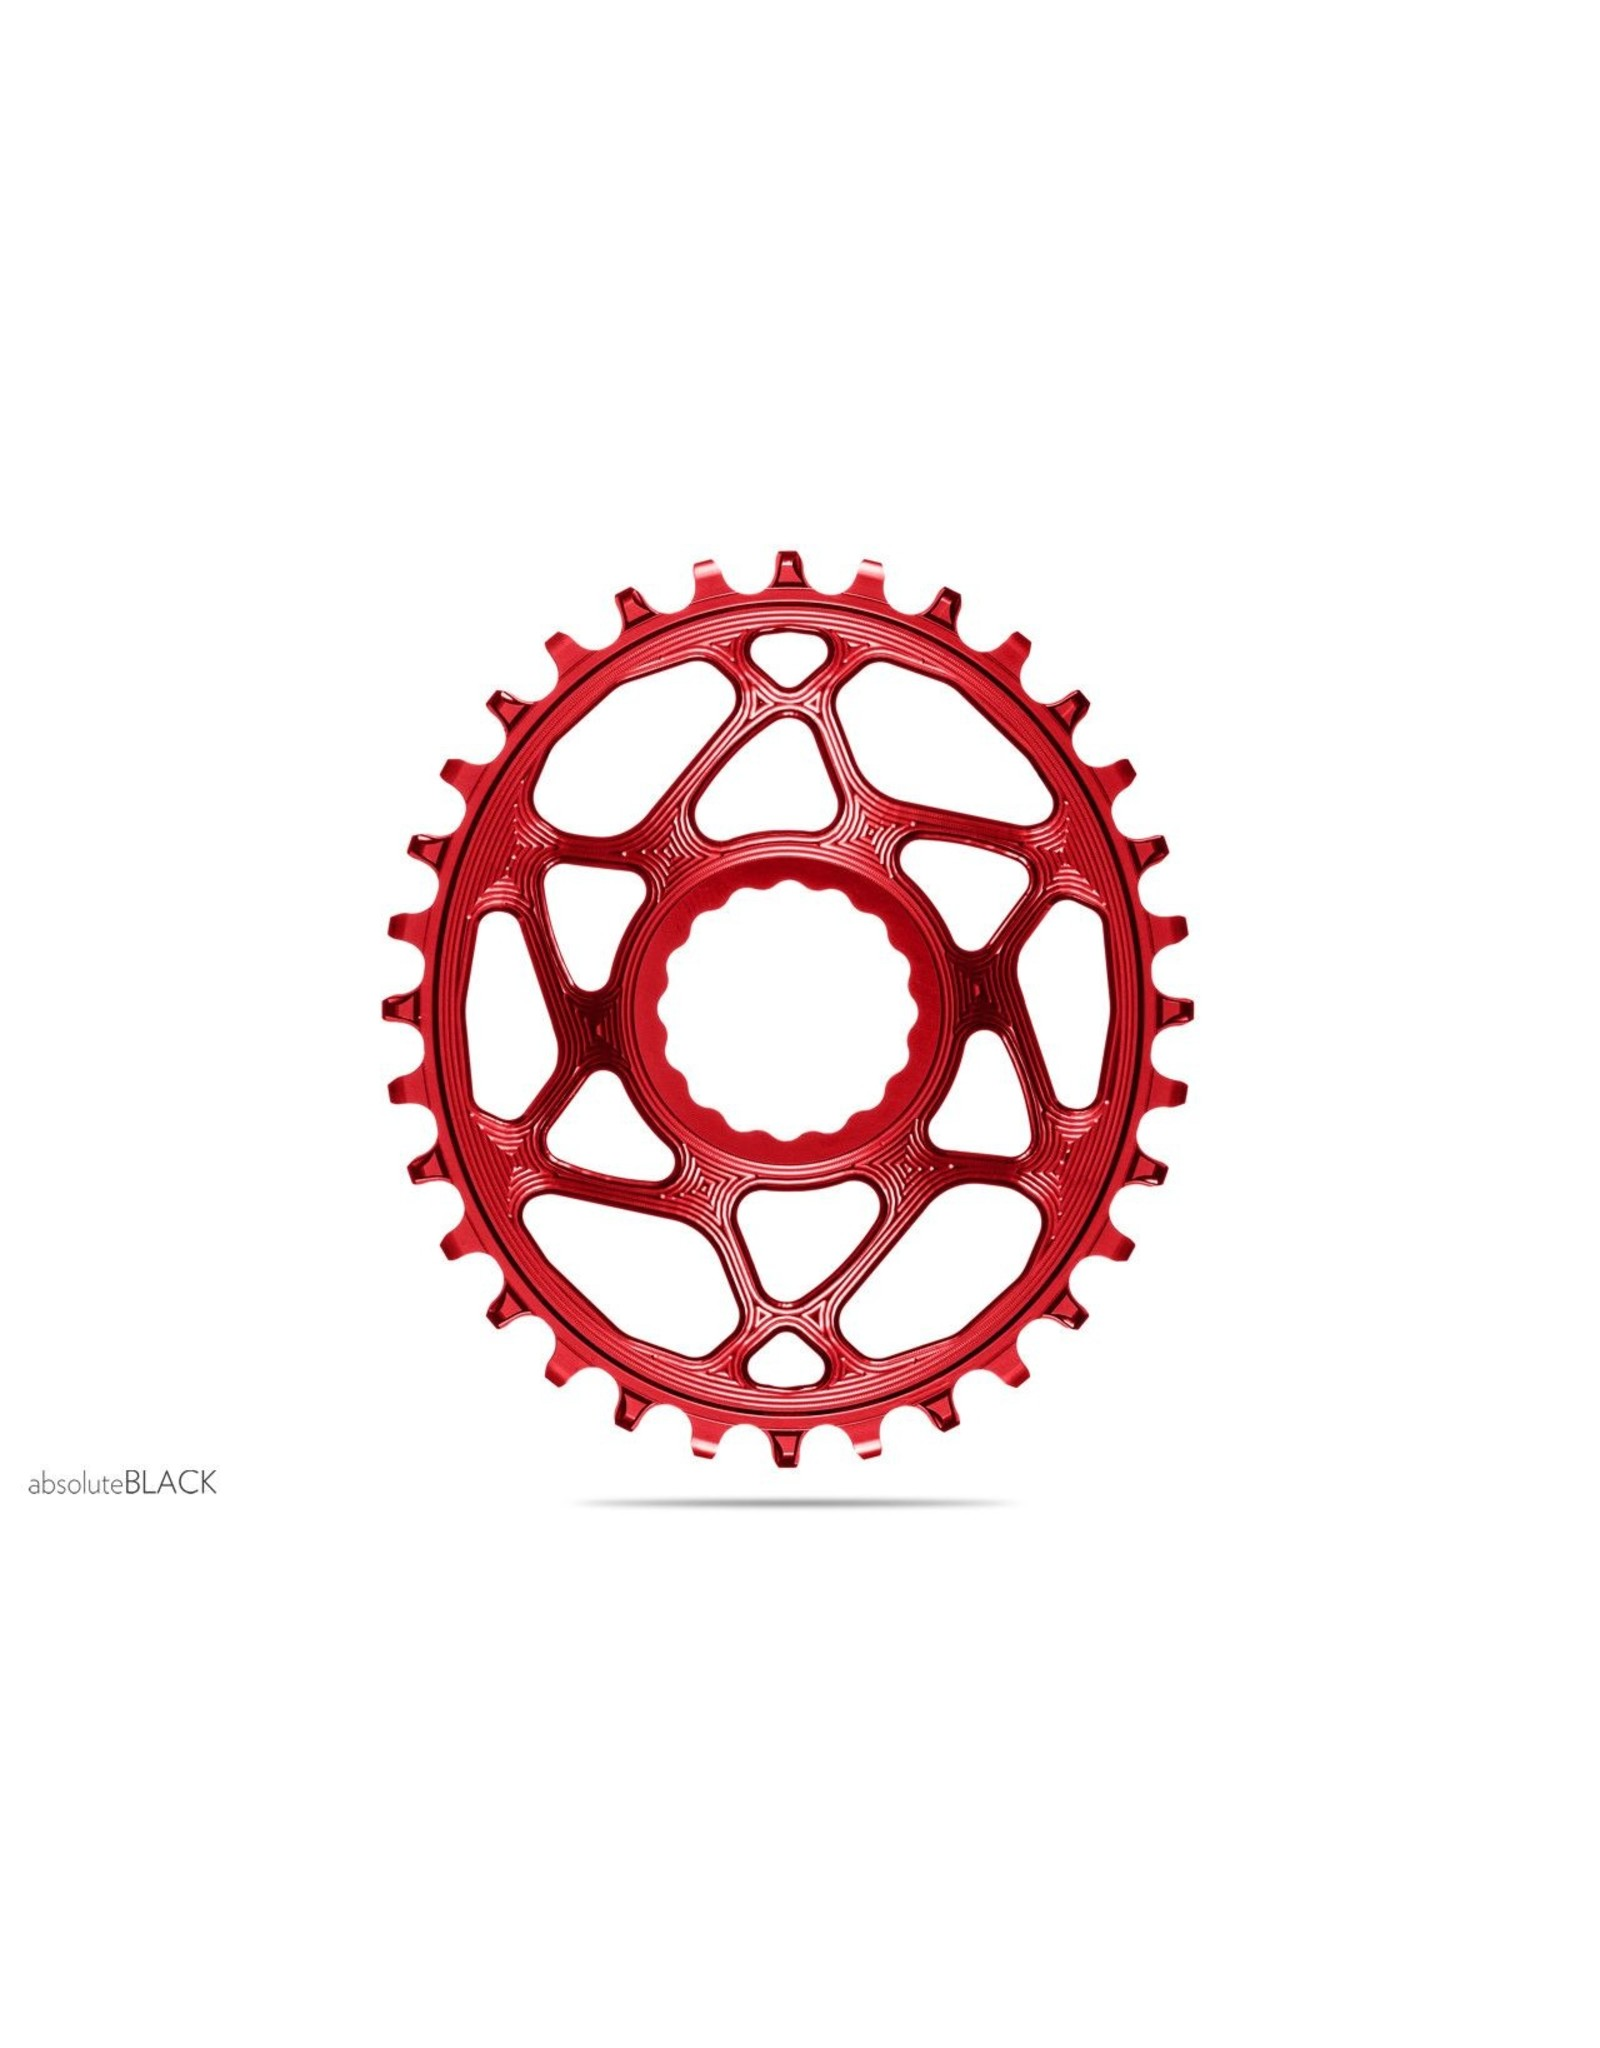 Absolute Black Absolute Black Spiderless Cinch DM Oval Chainring, 34T - Red